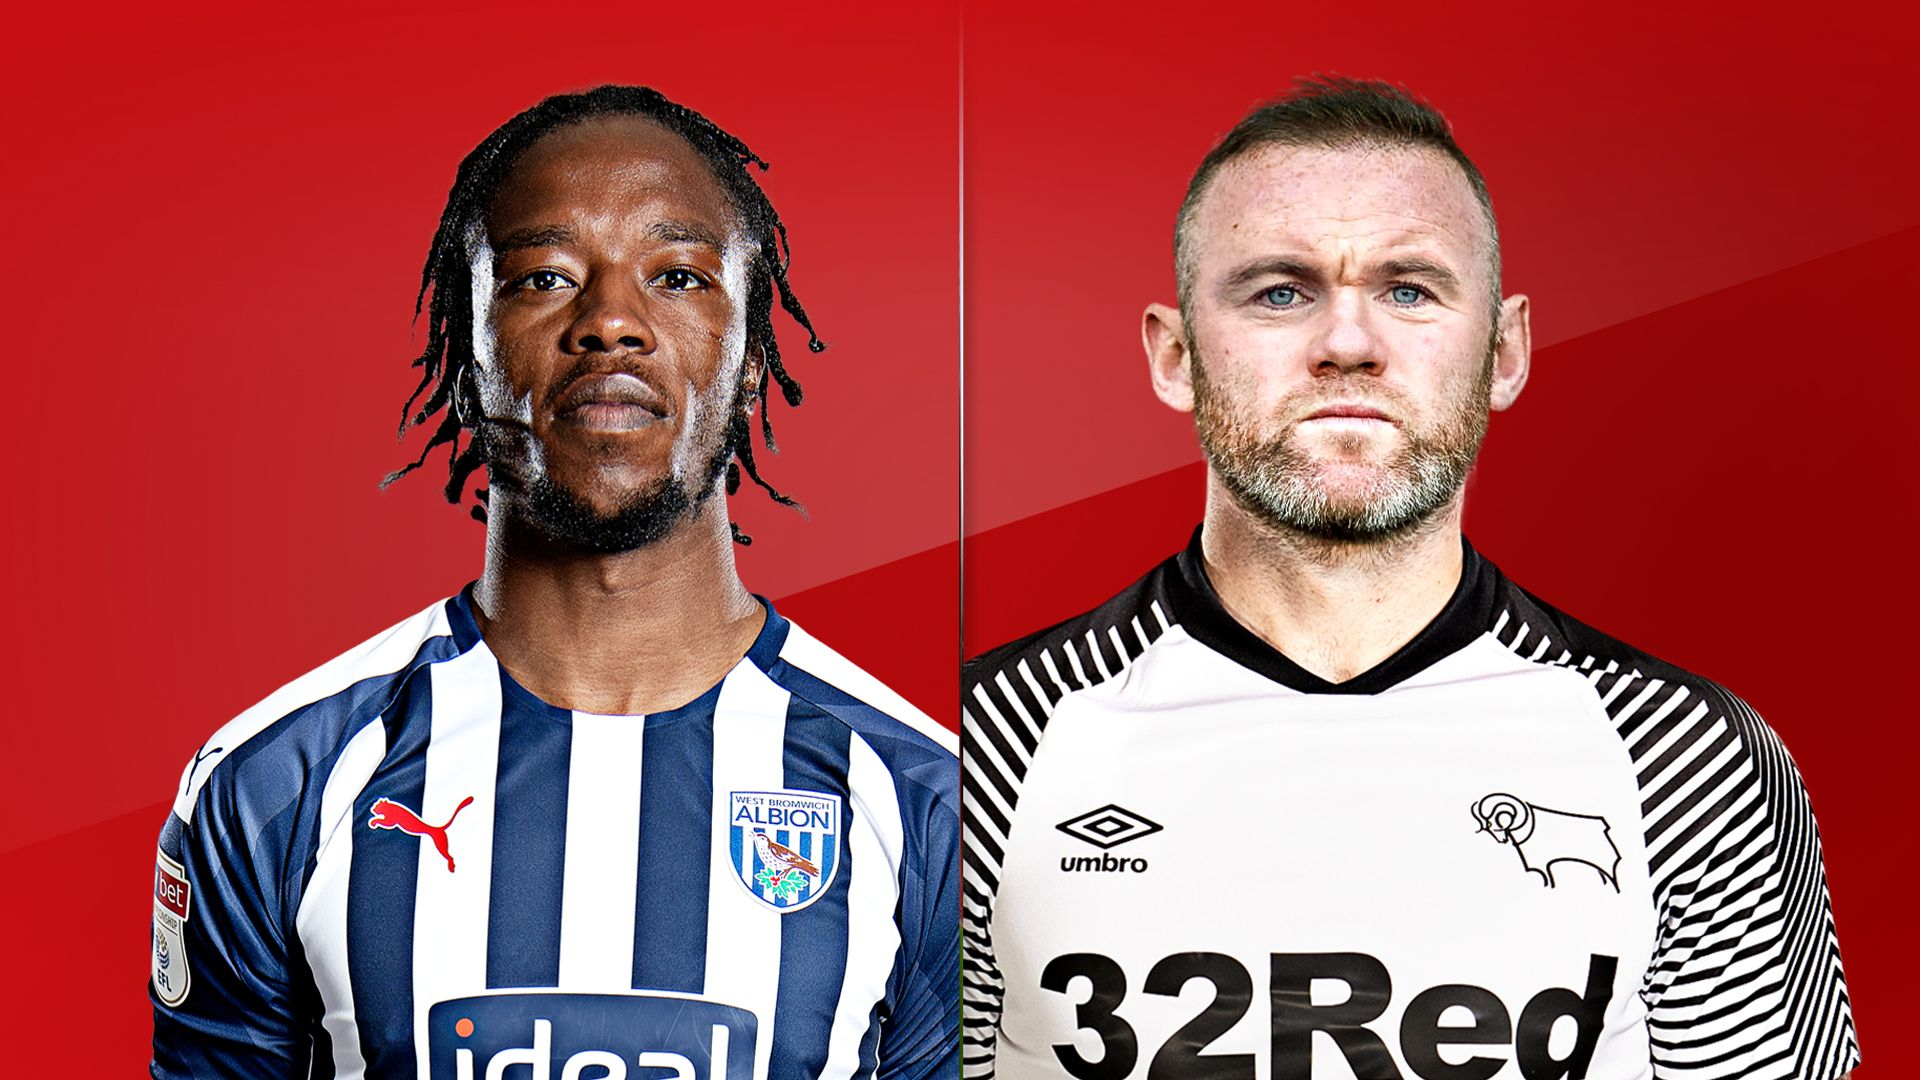 Live on Sky: West Brom vs Derby